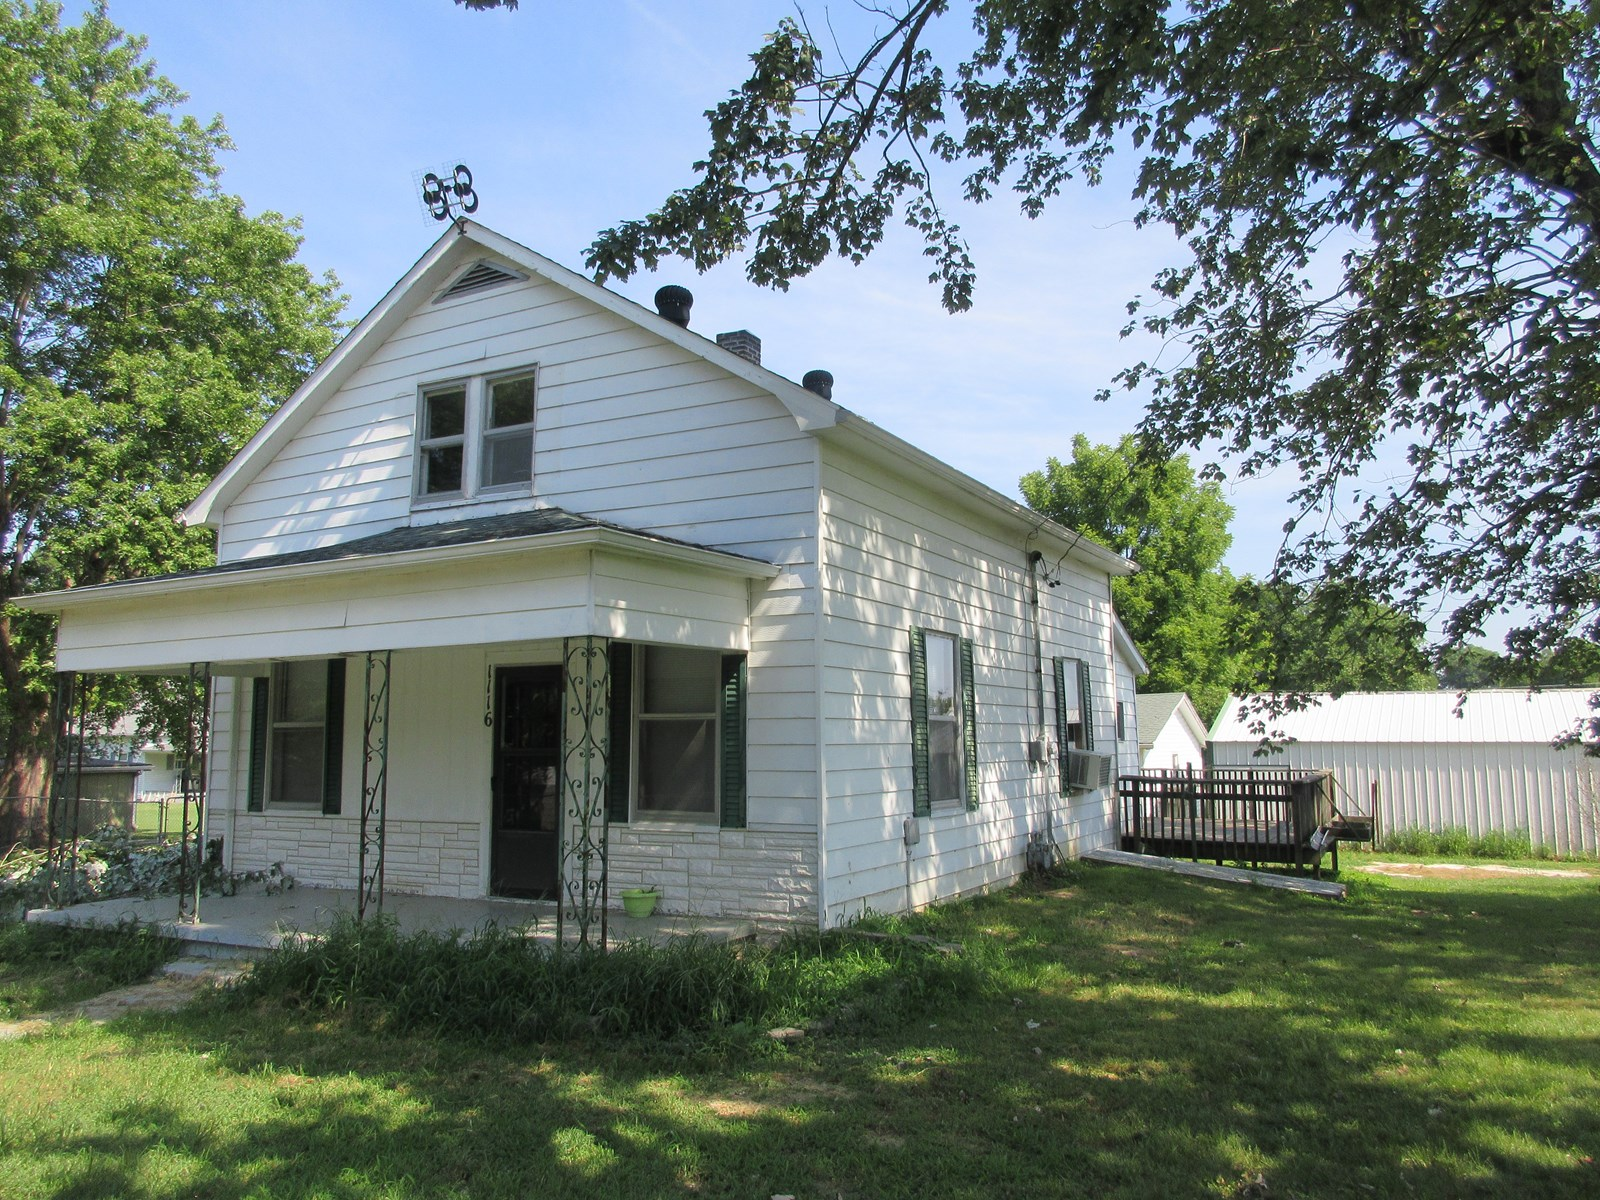 Bungalow Home for Sale in Scott City, Missouri